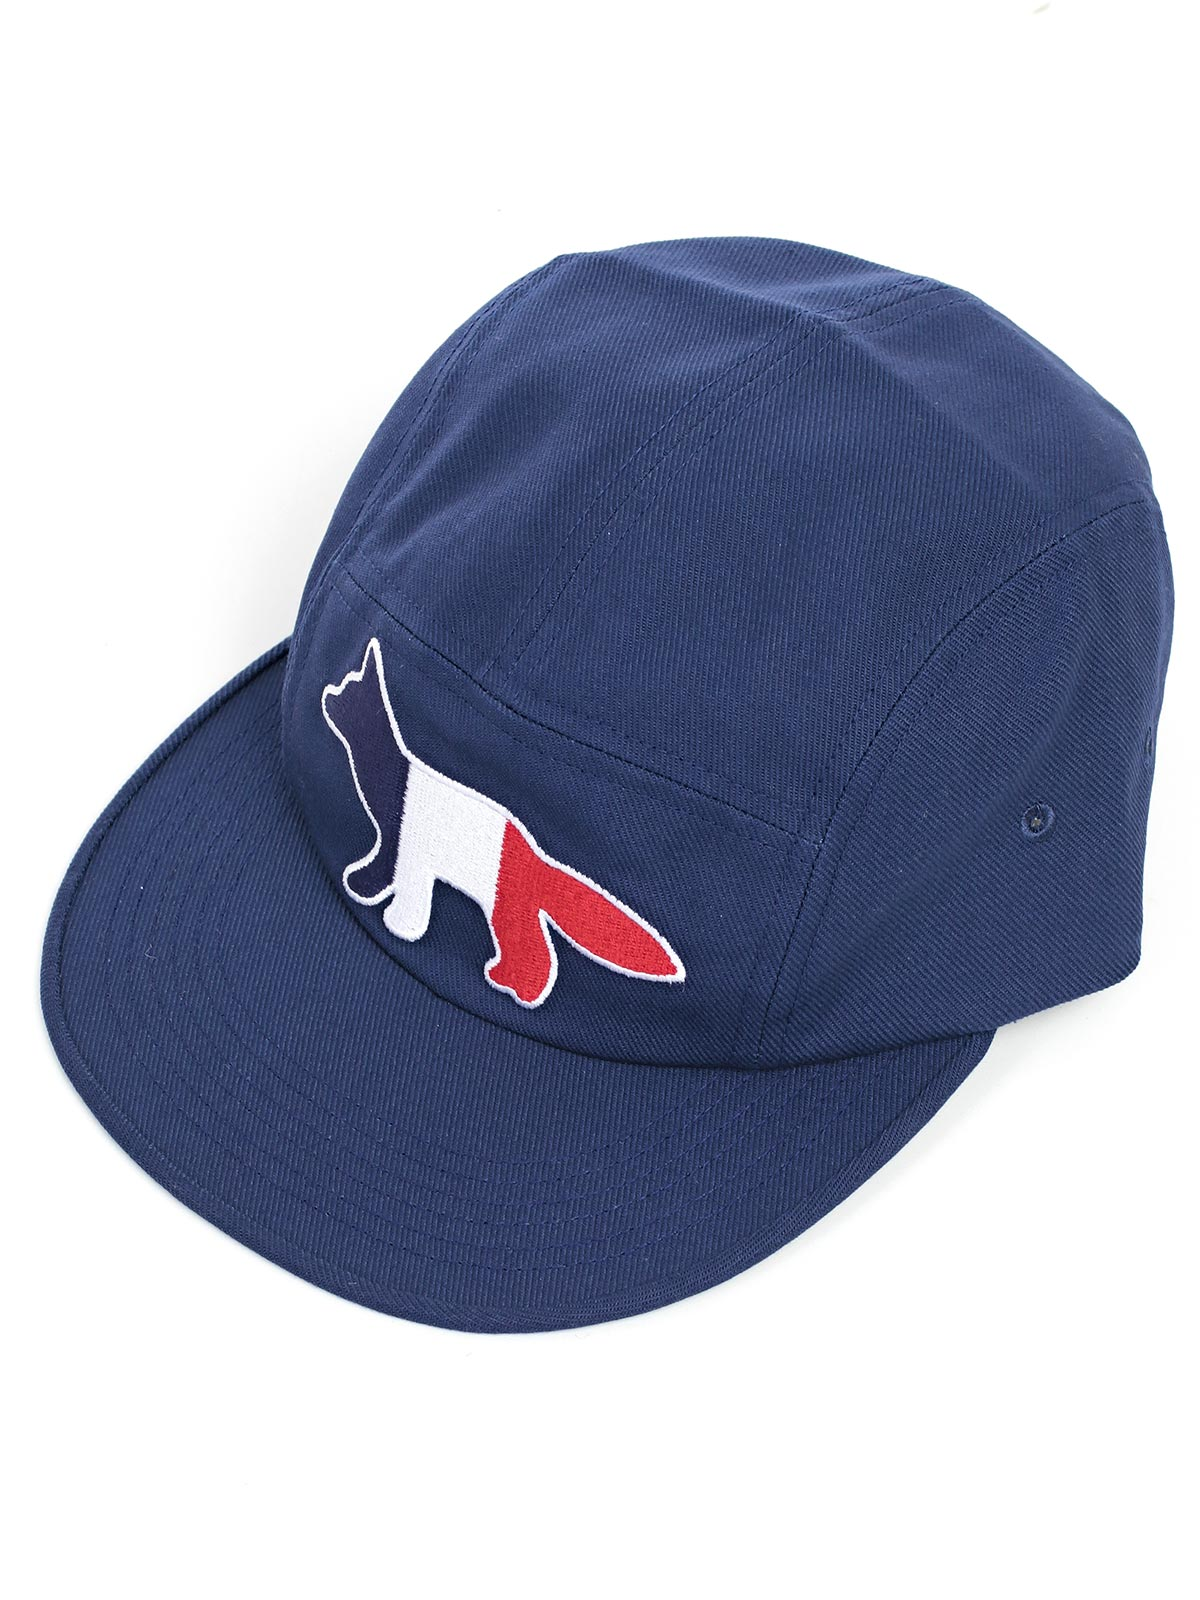 Picture of Maison Kitsune Hat